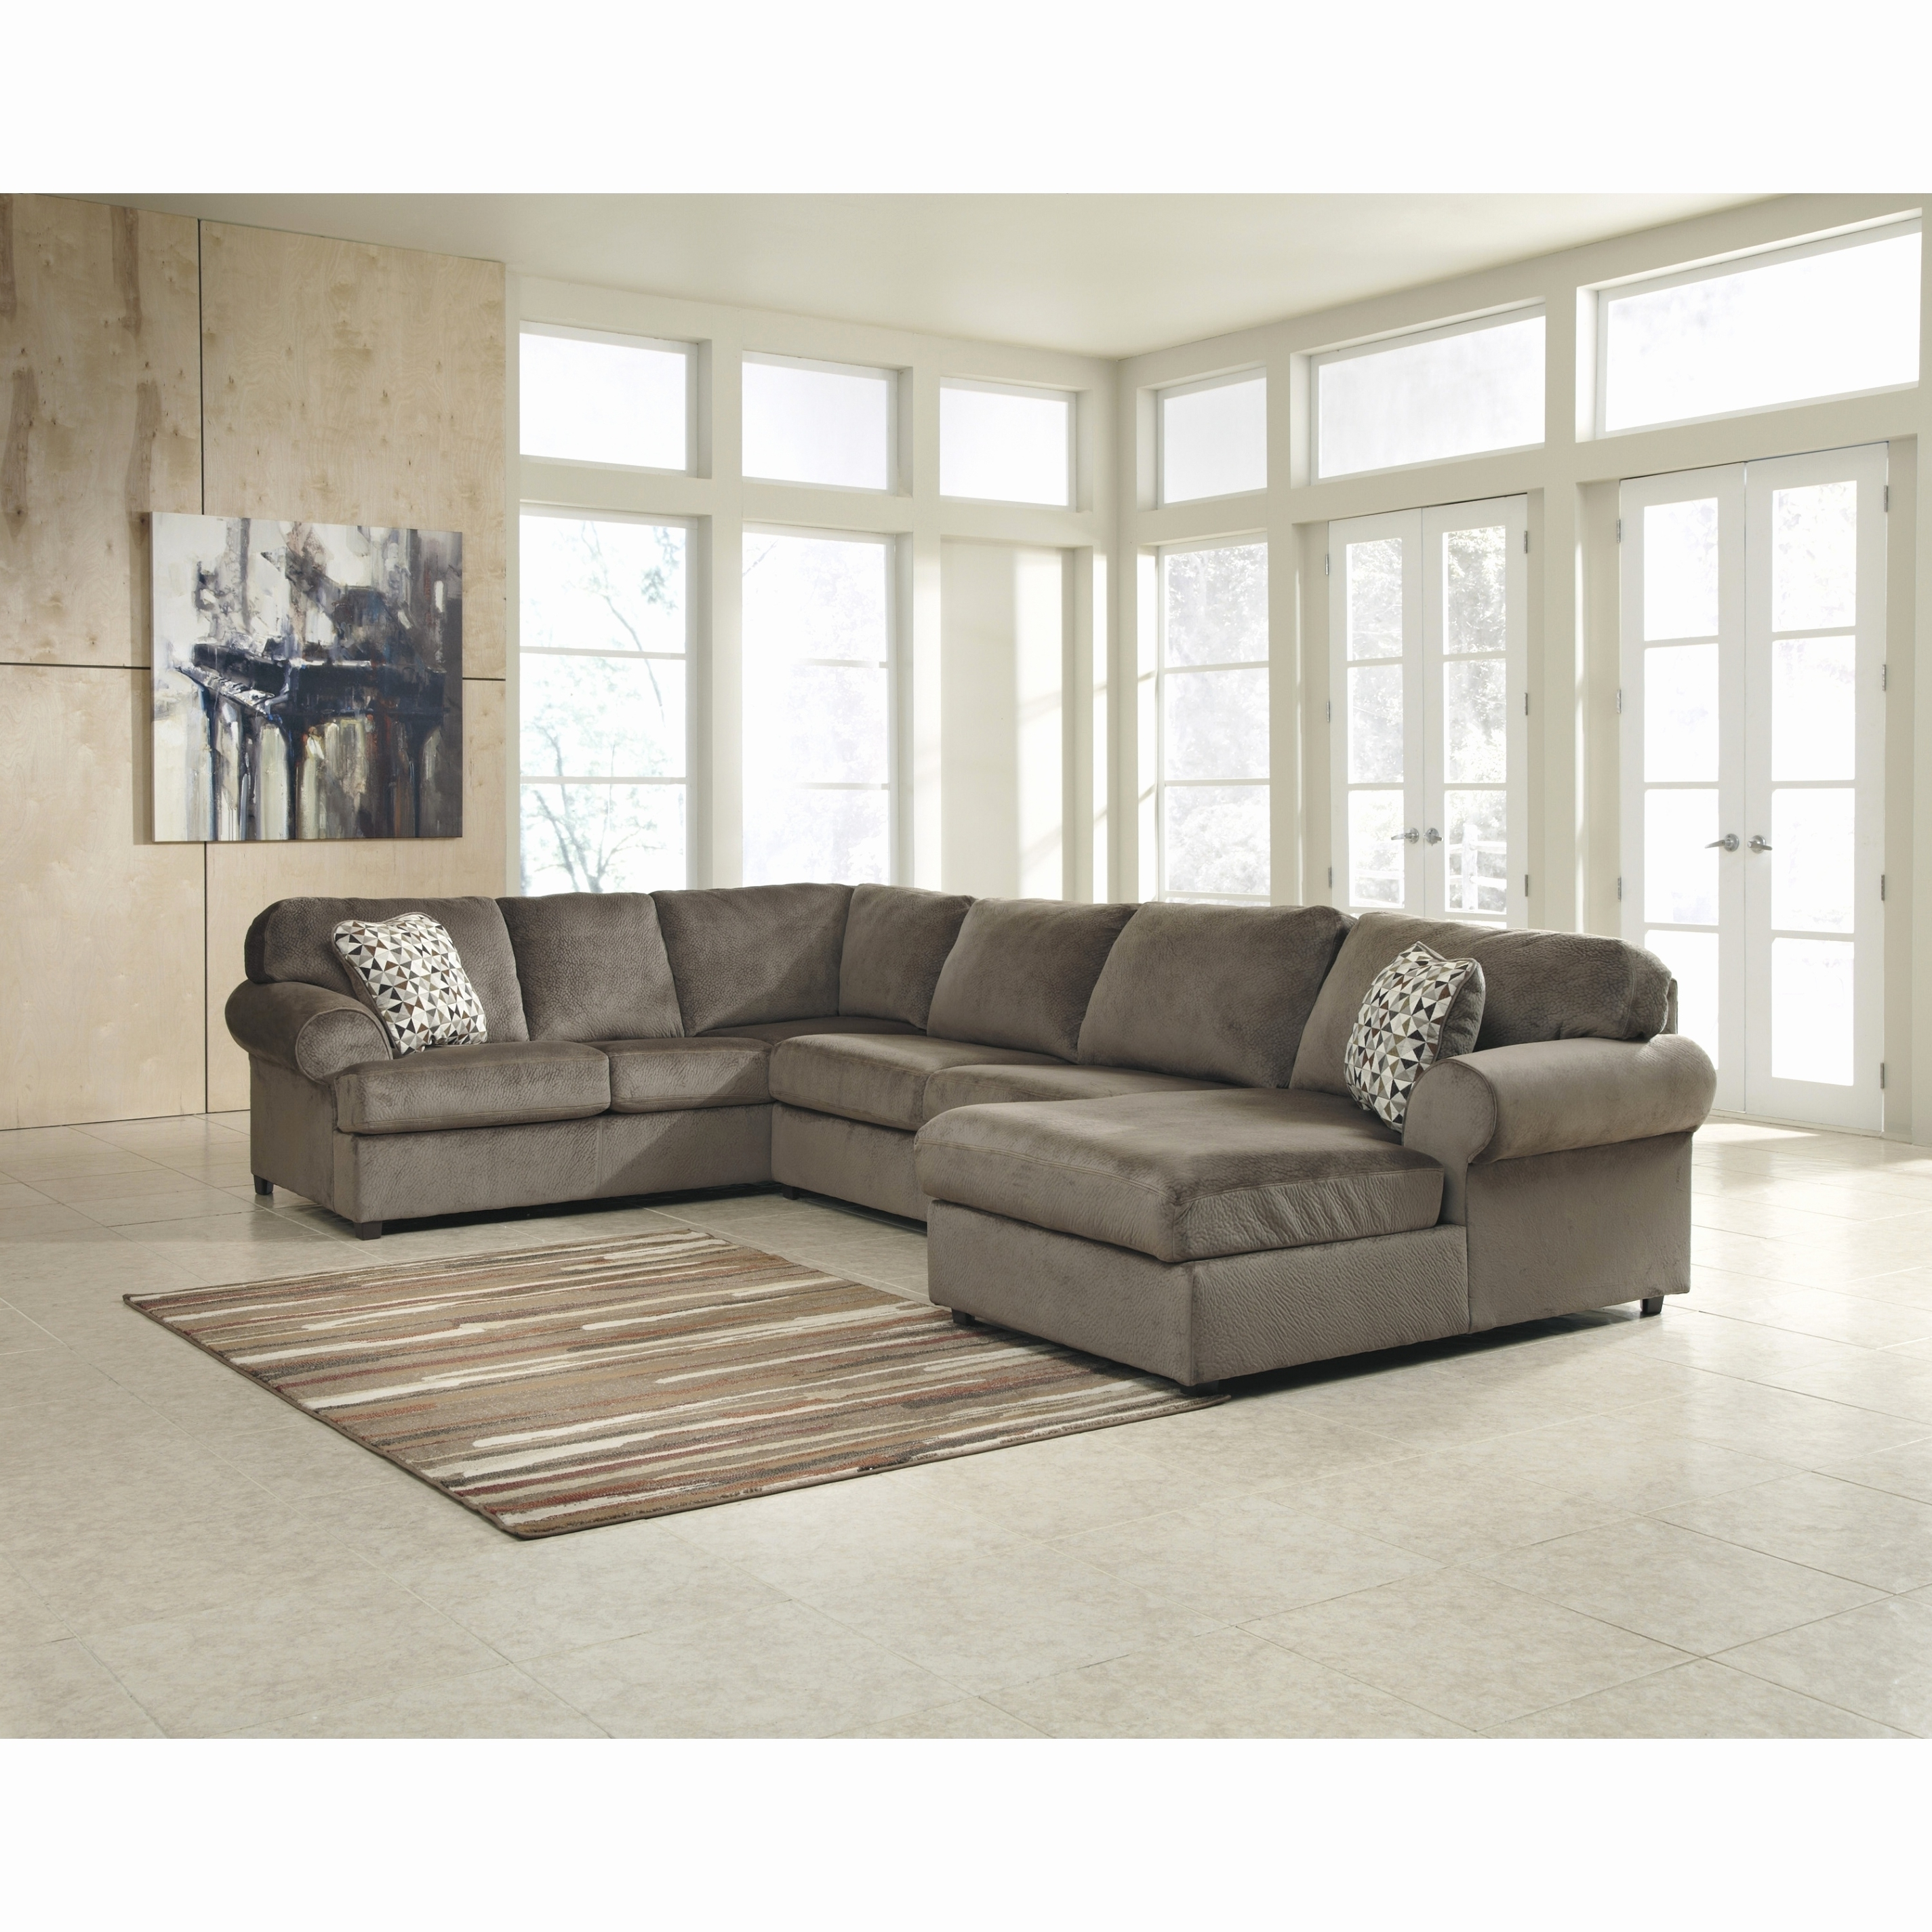 Current Tulsa Sectional Sofas In Unique Sofas And Sectionals 2018 – Couches And Sofas Ideas (View 3 of 20)